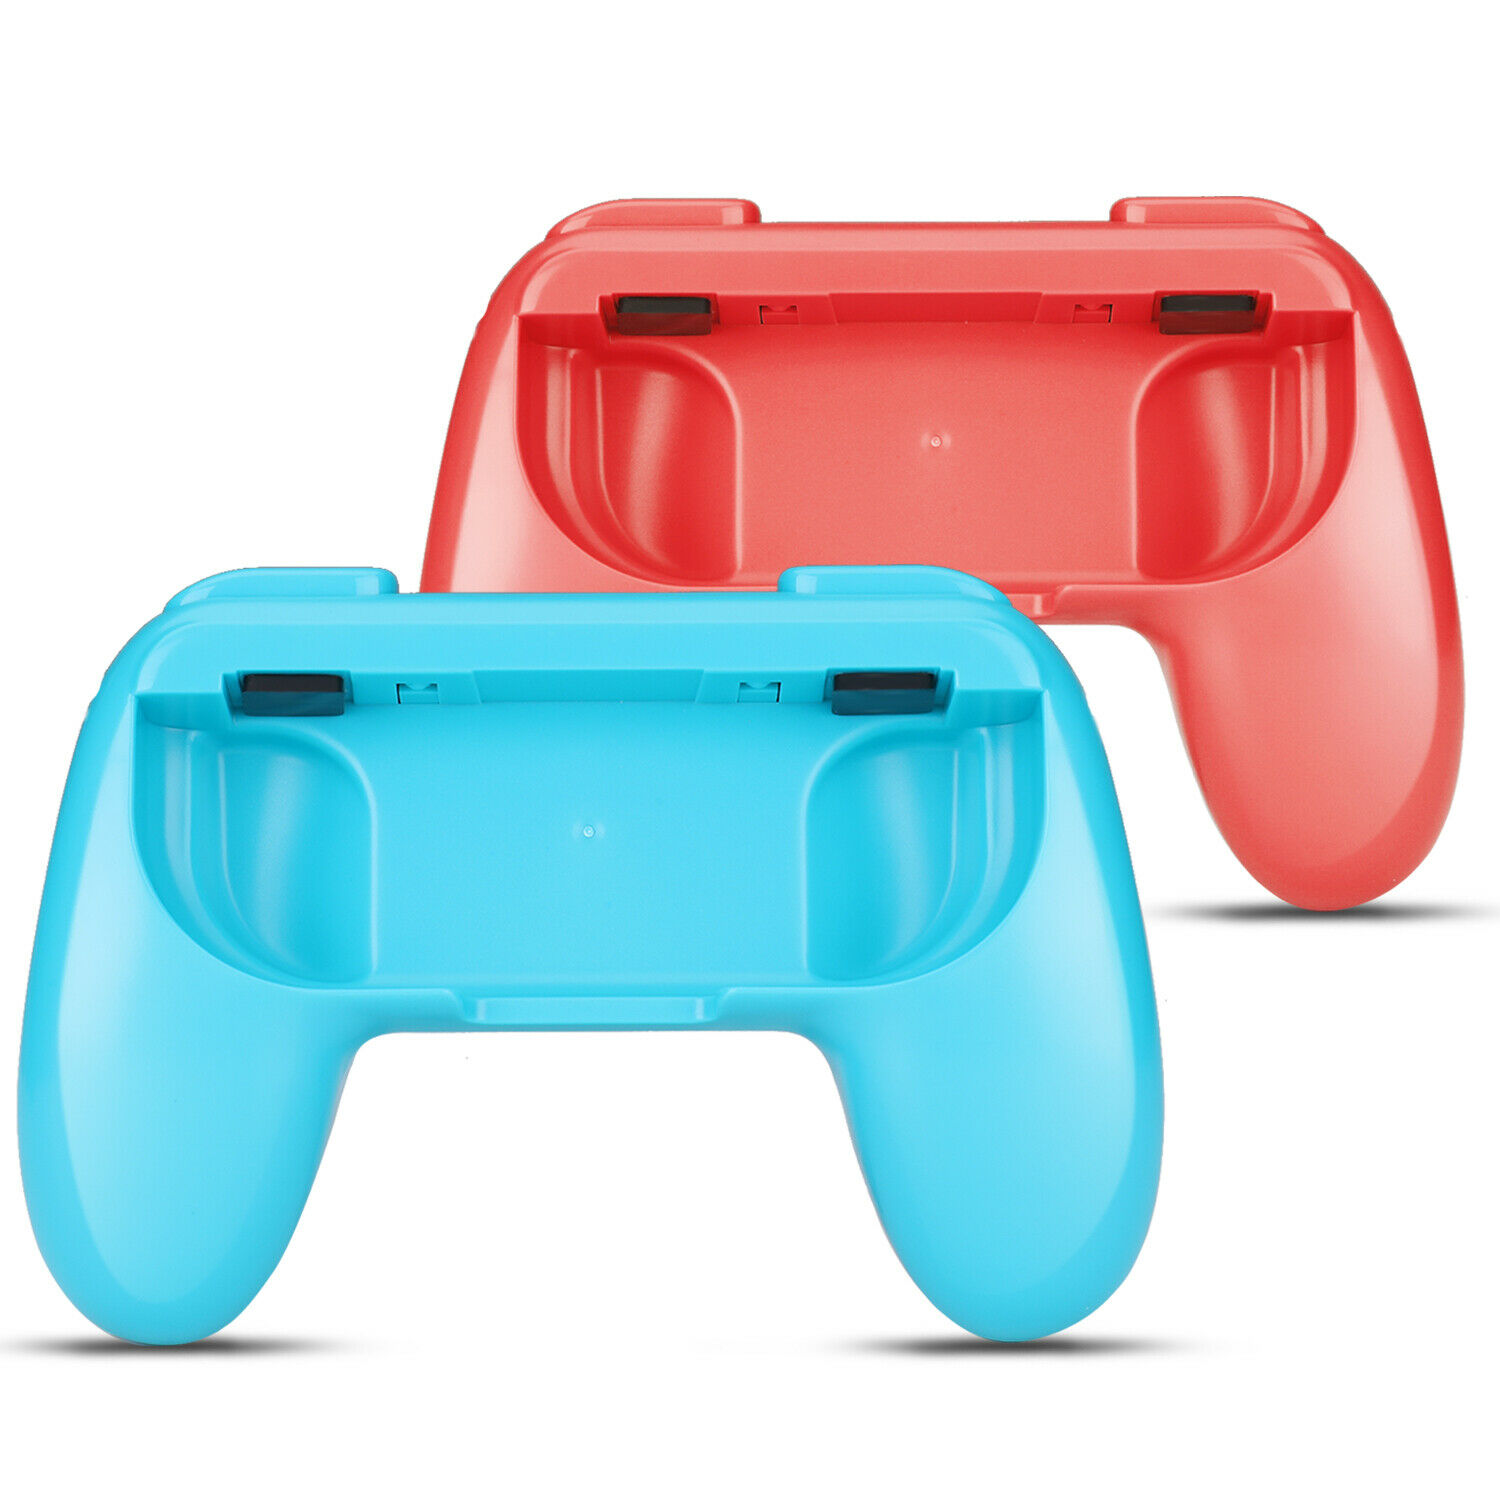 2 x Grip Holder pentru Nintendo Switch Joy-Con - 60446